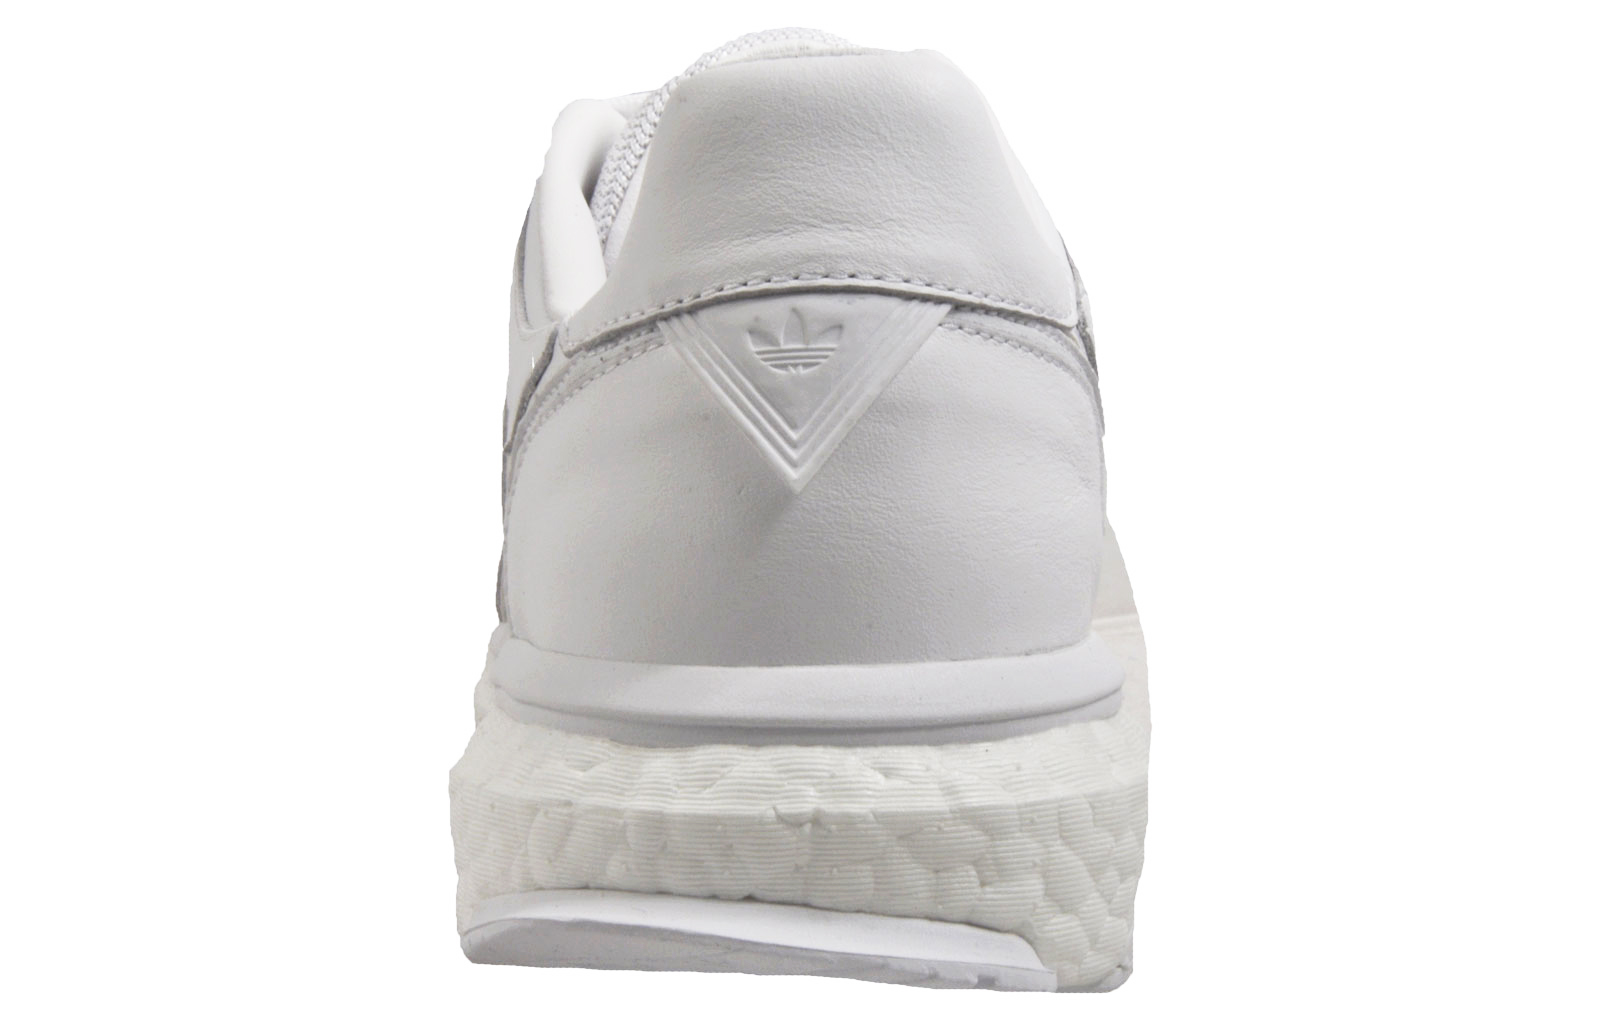 936e7731a7864 Adidas Originals White Mountaineering Energy Boost Uni Casual Classic  Trainers Ltd Edition